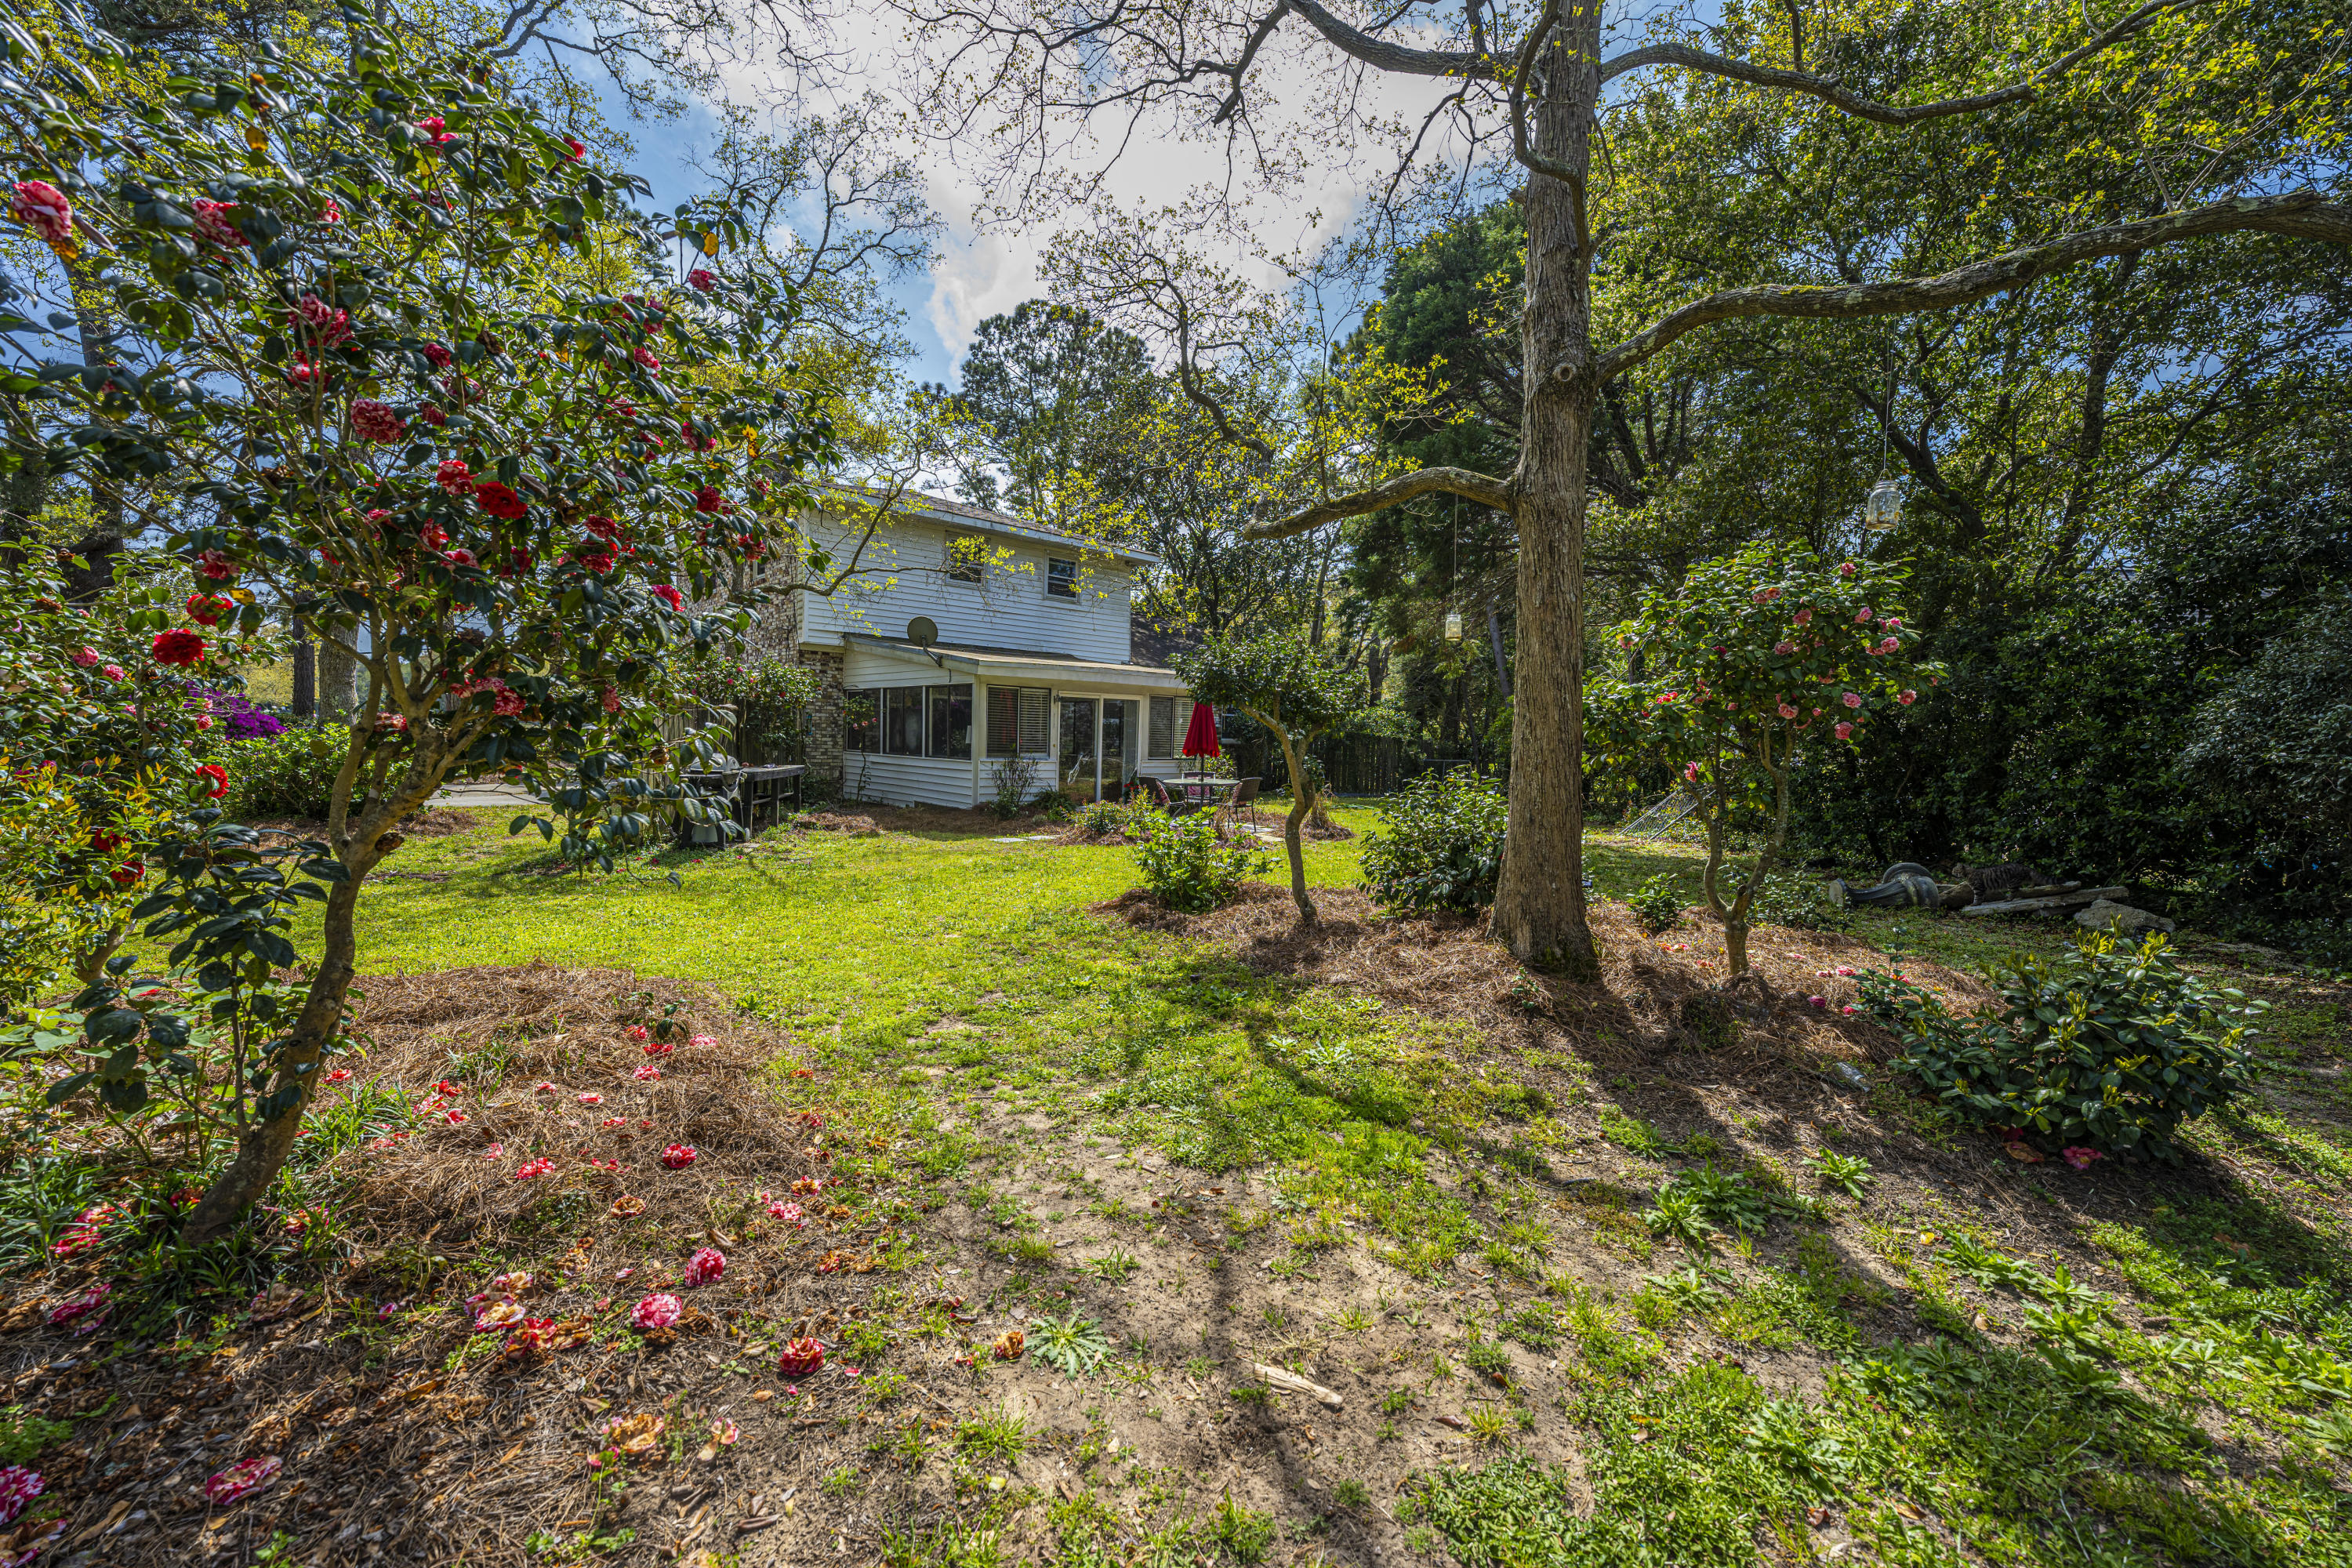 Stiles Point Homes For Sale - 775 Sparrow, Charleston, SC - 36